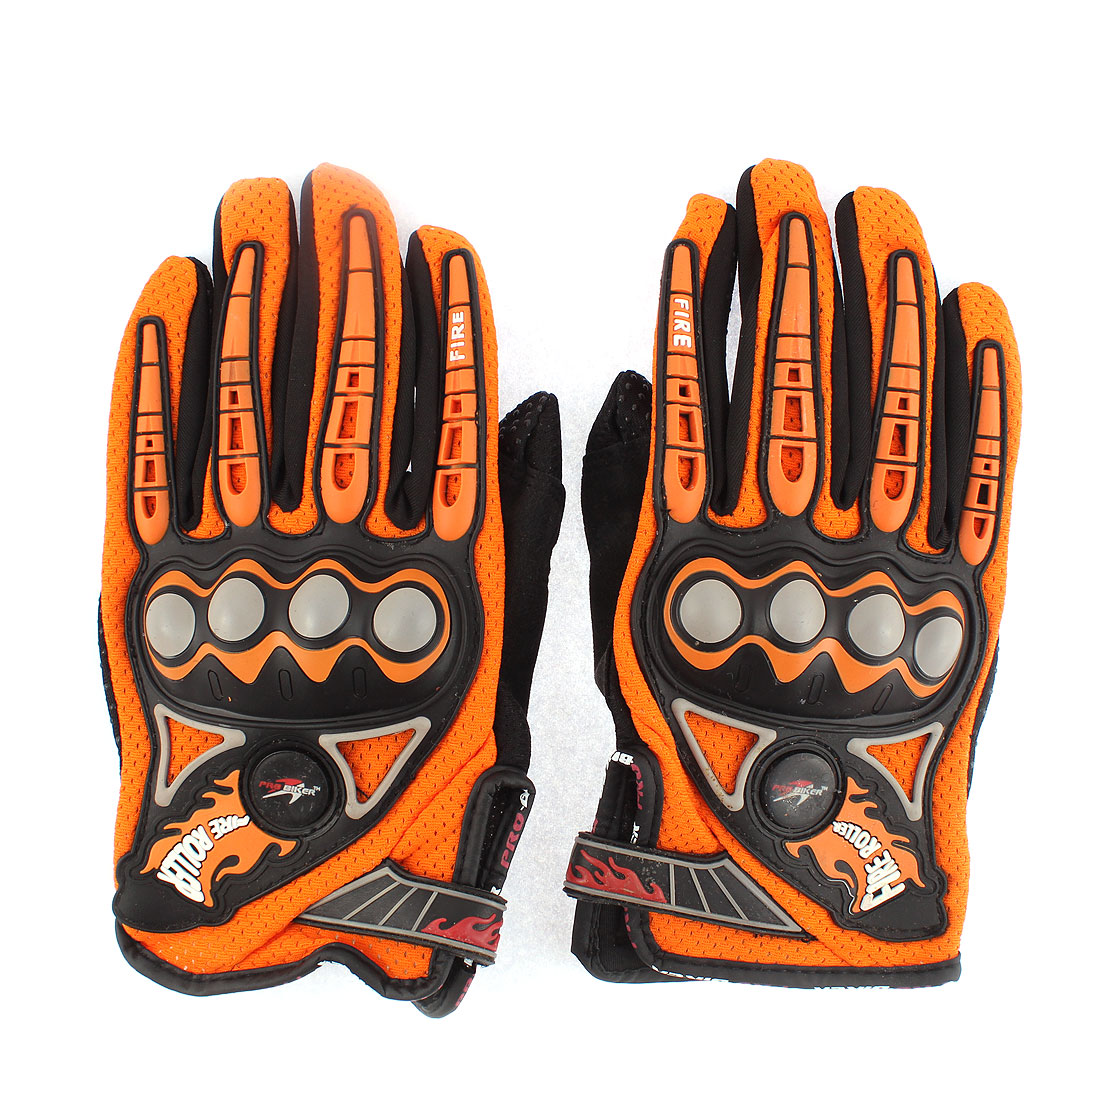 2 Pcs Unisex Full Finger Motorcycle Racing Cycling Outdoor Sport Gloves L Orange